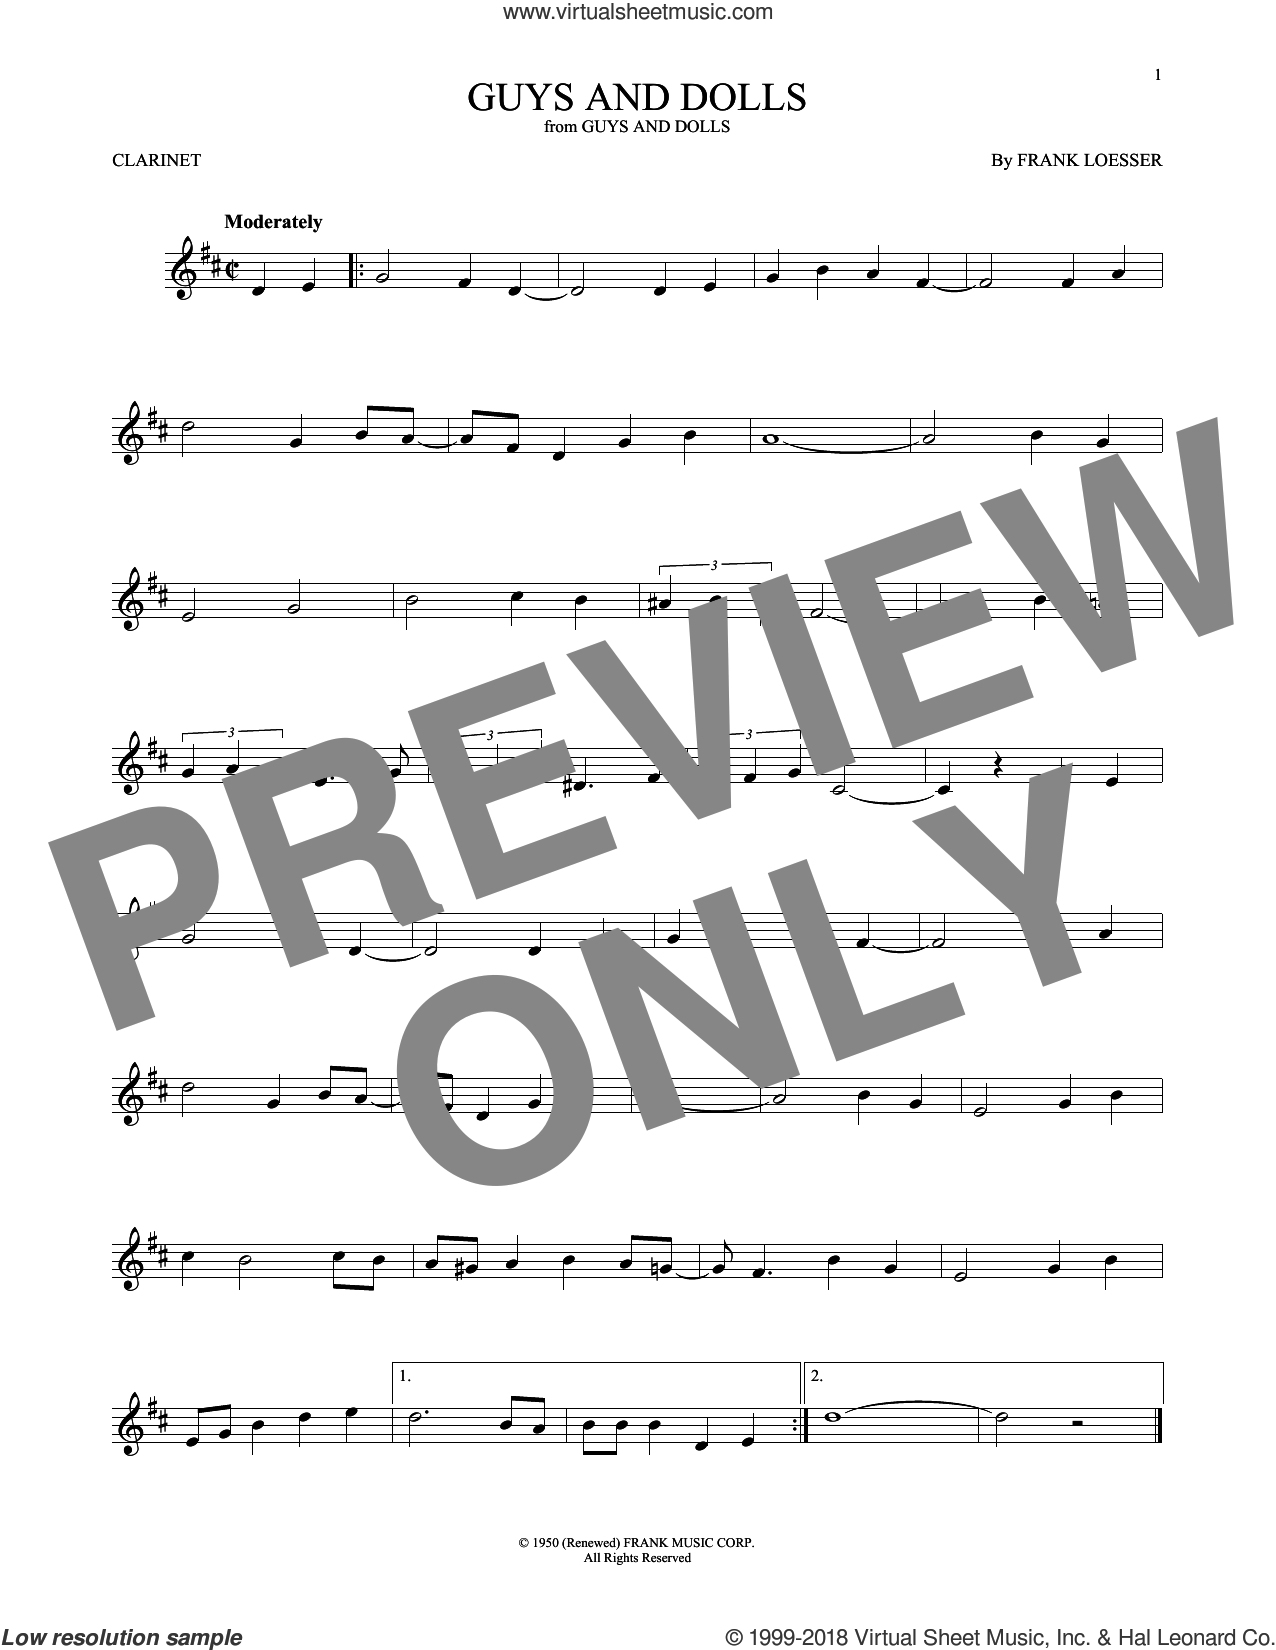 Guys And Dolls sheet music for clarinet solo by Frank Loesser, intermediate skill level